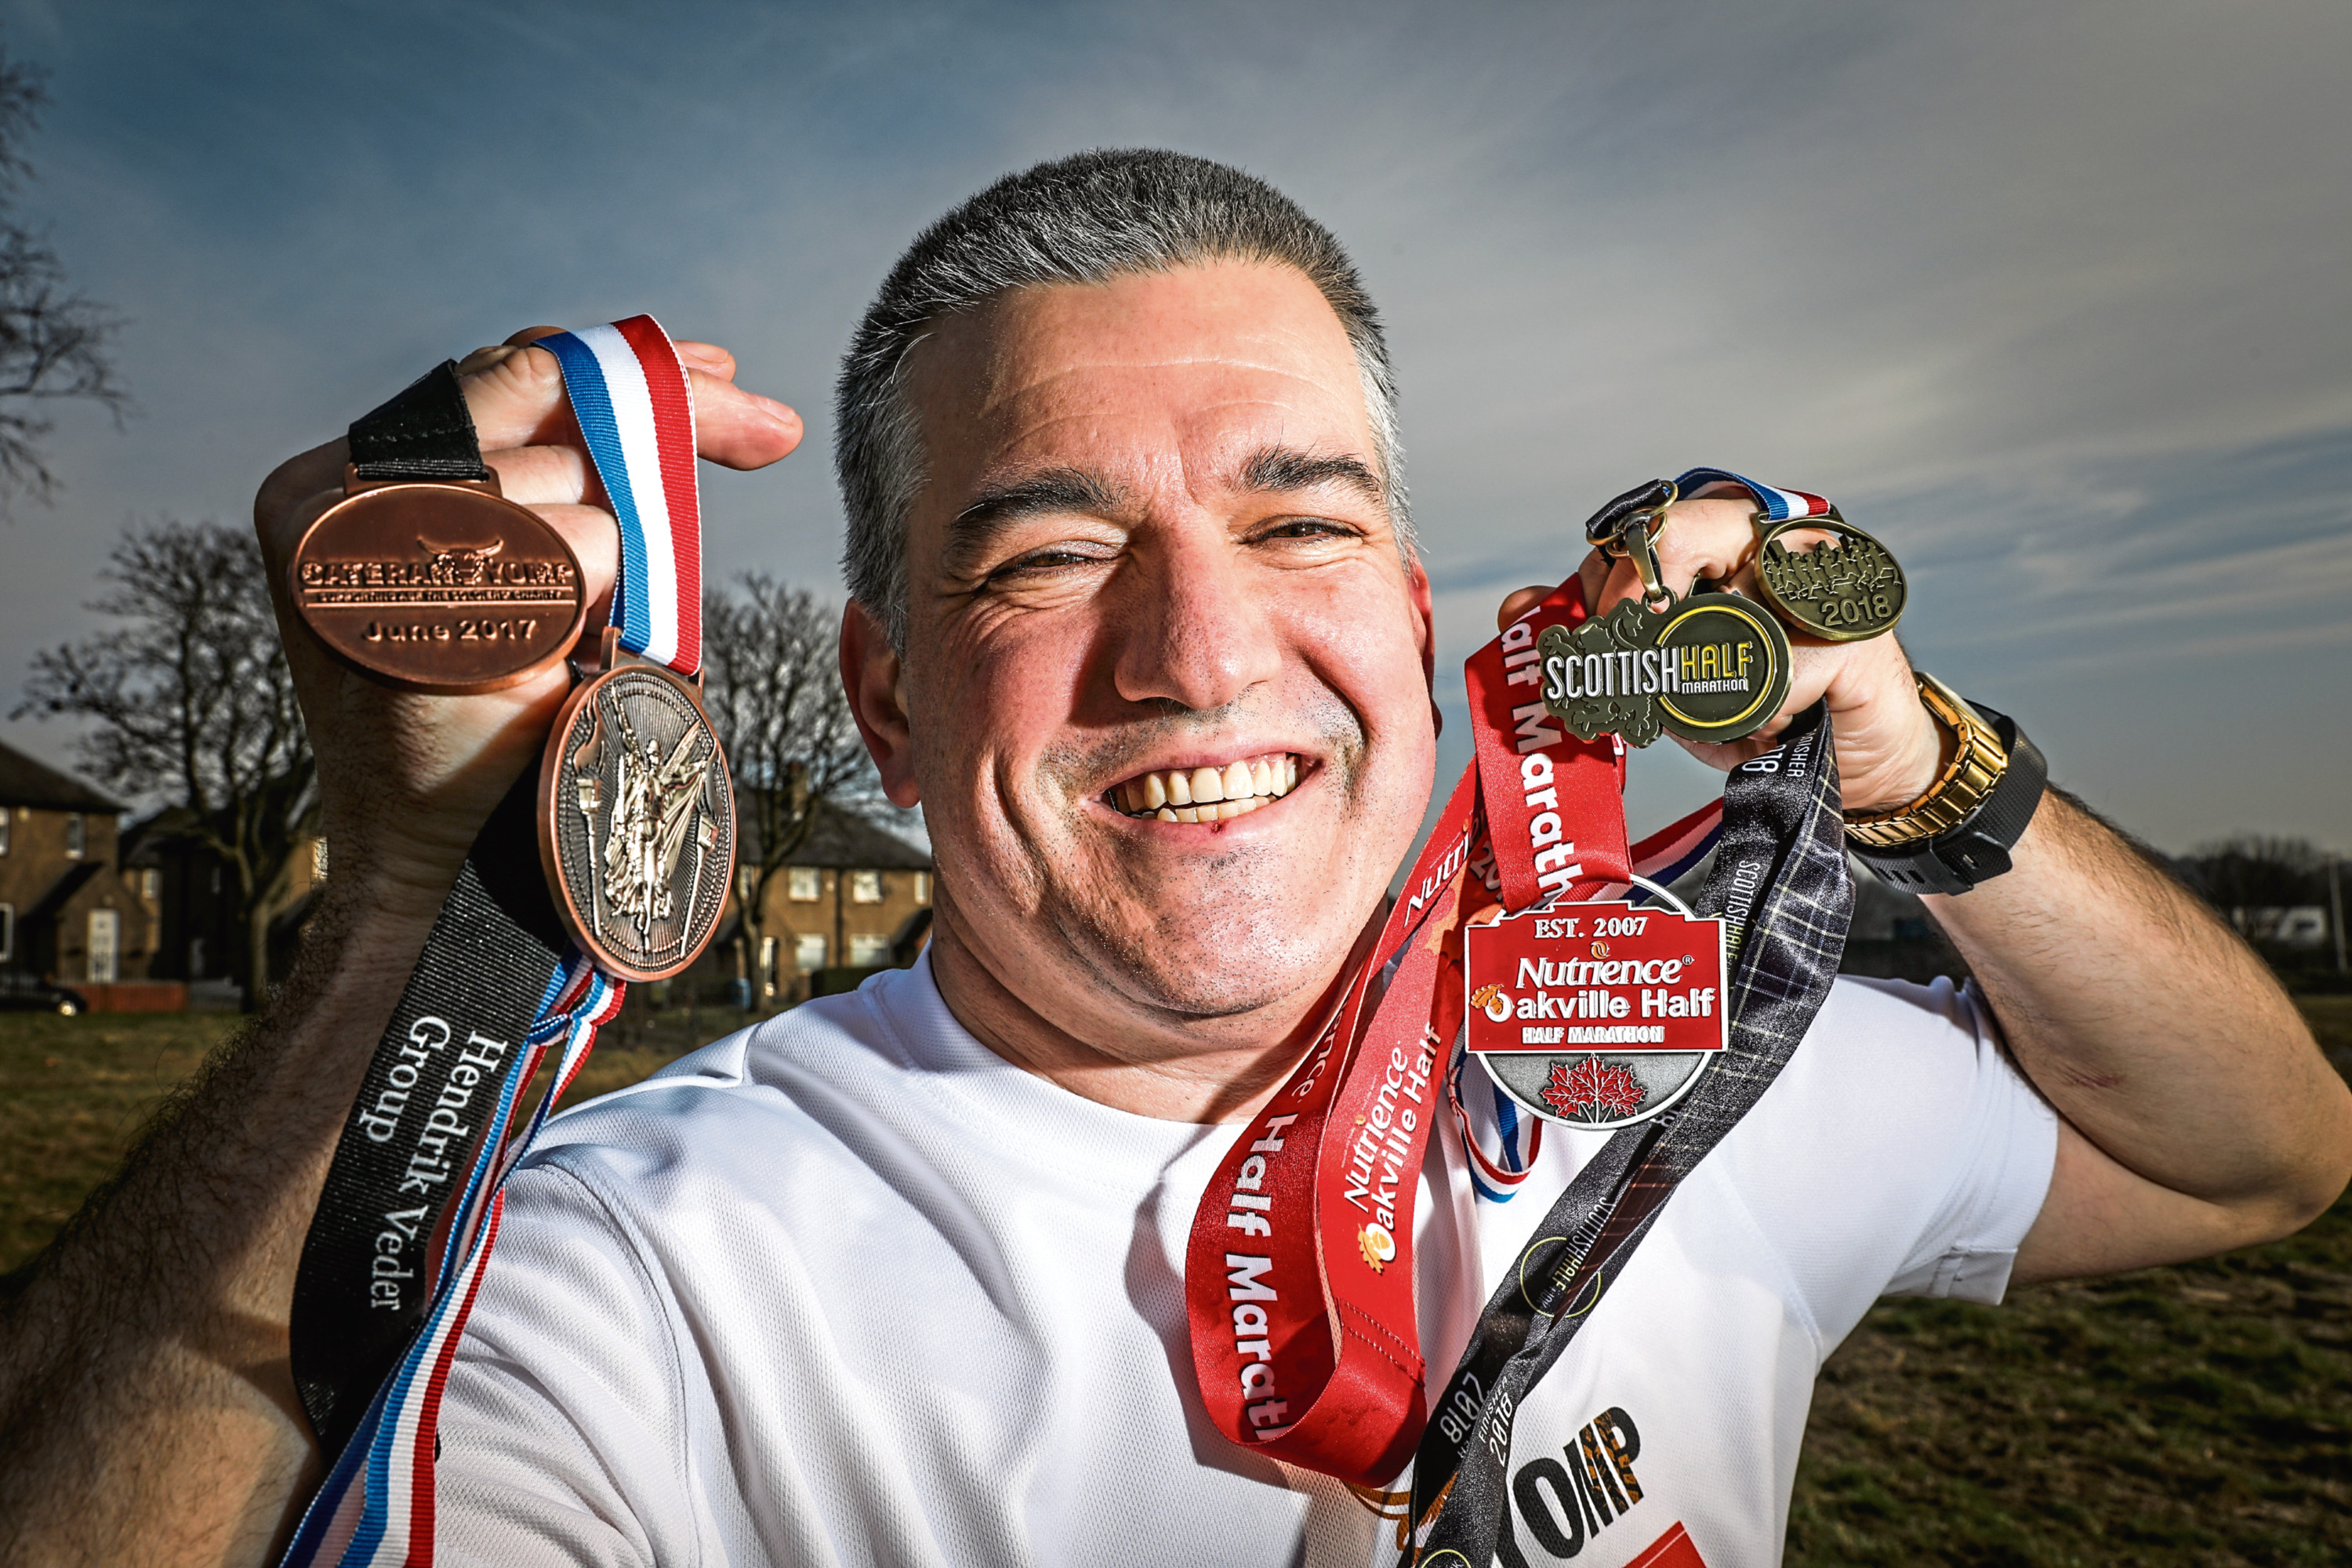 Ian Davidson, 49, has been taking part in running events after losing most of the sight in one eye and vows to continue